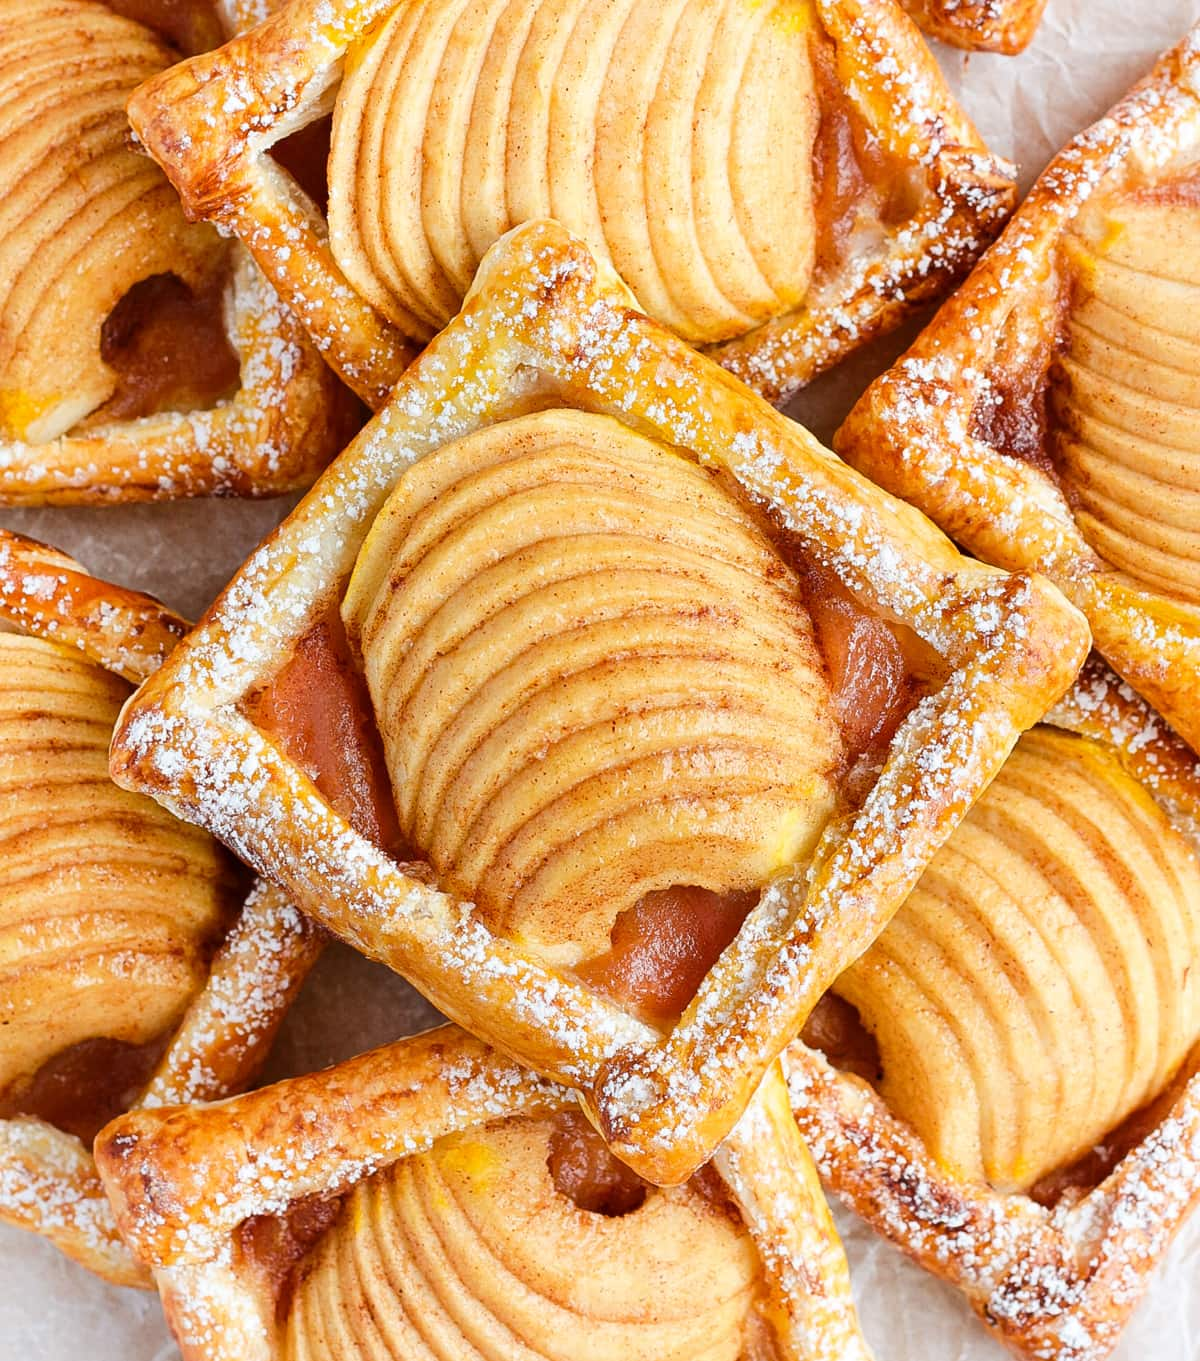 Stack of pastries from above.